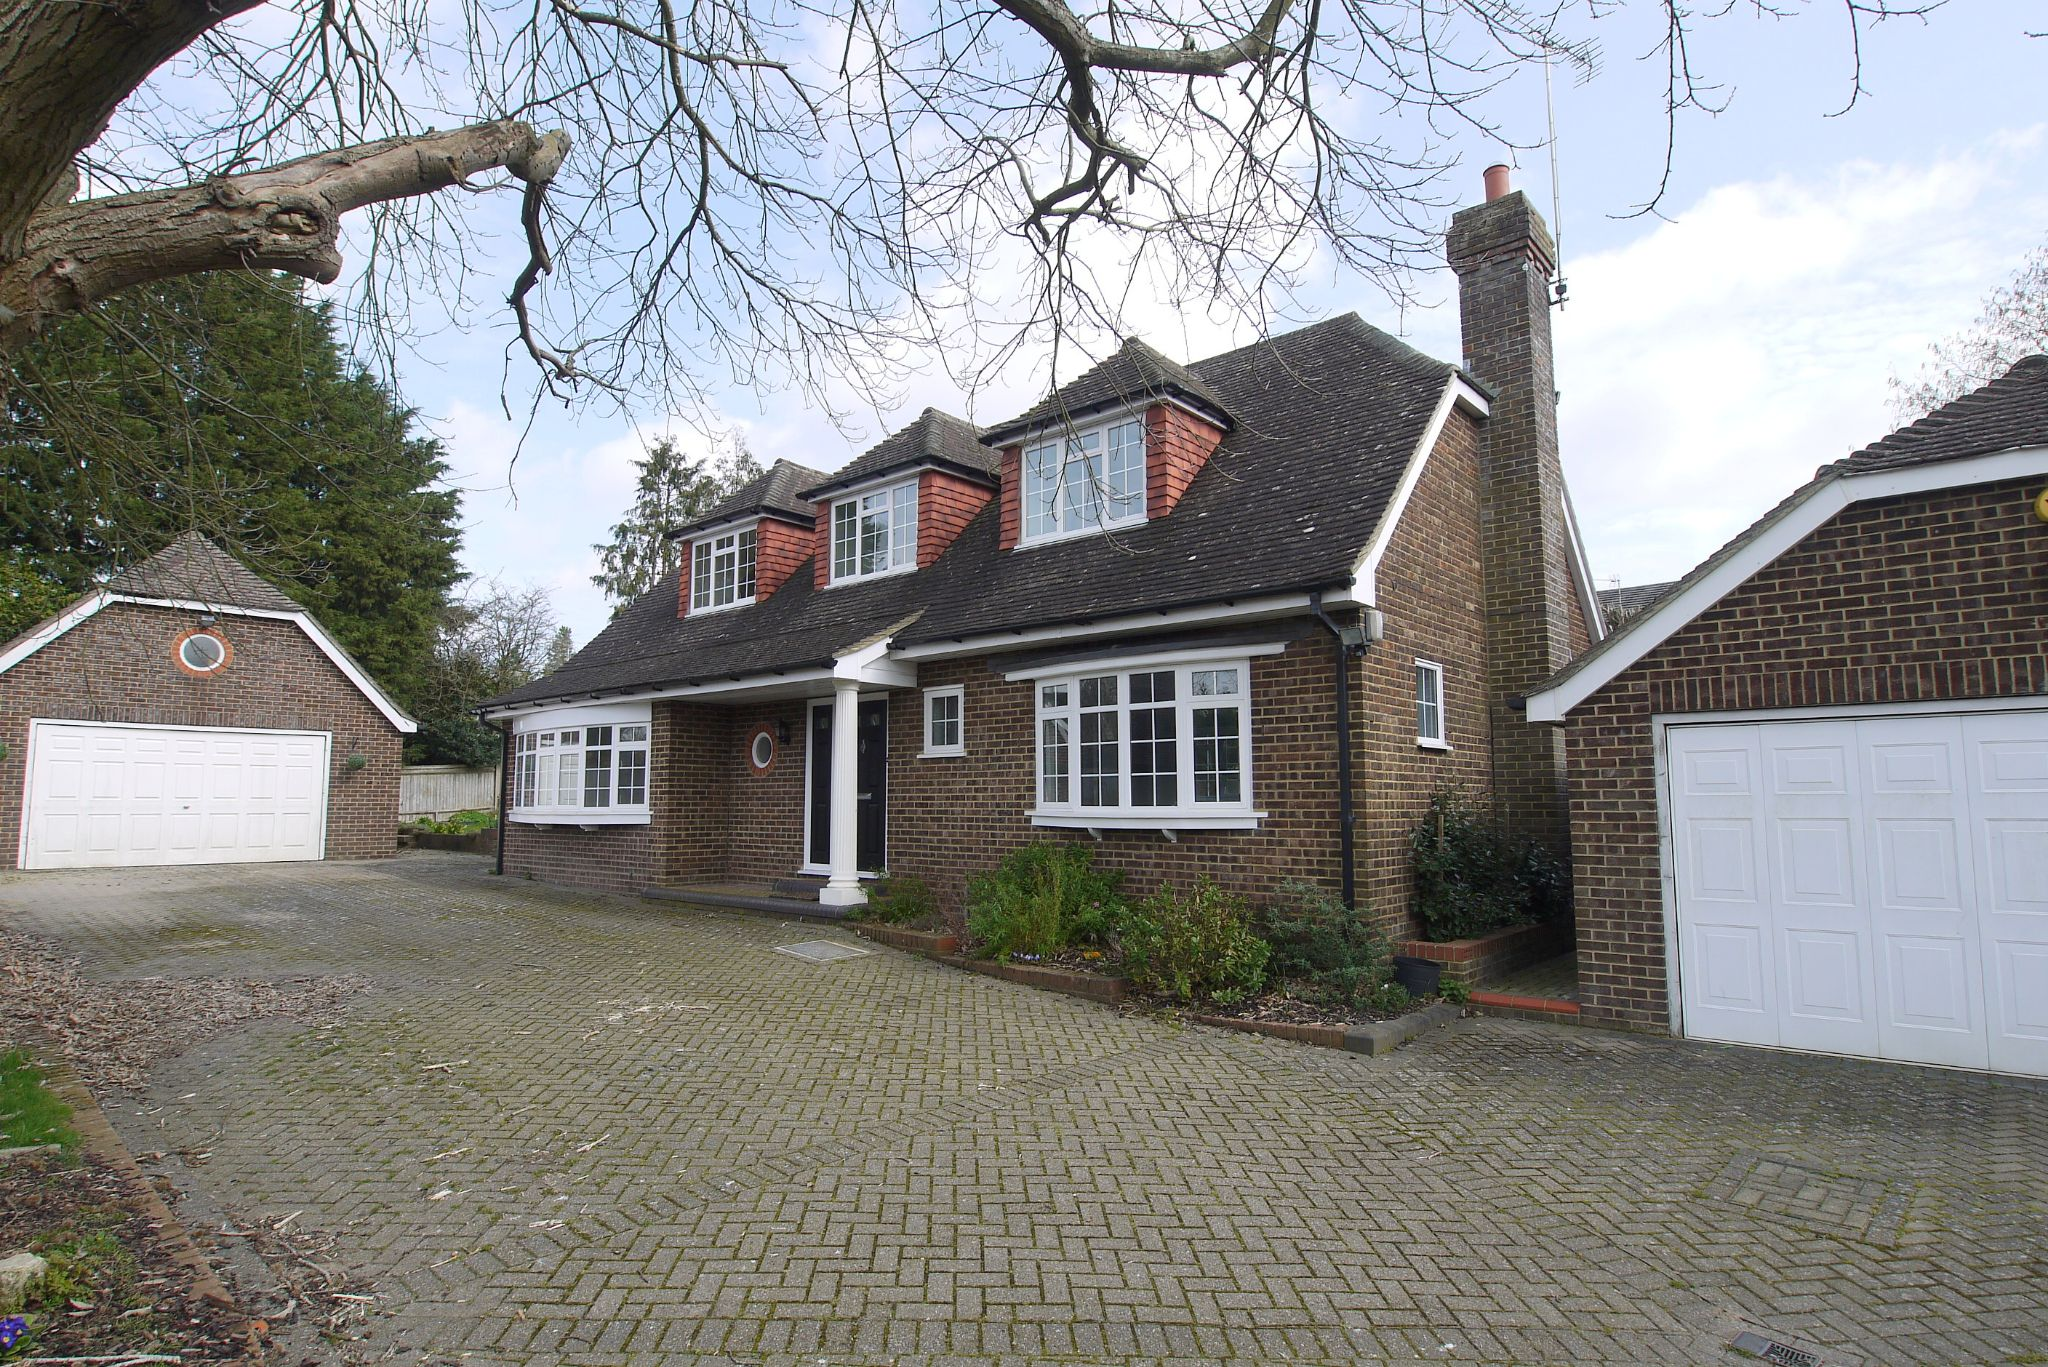 4 bedroom detached house For Sale in Sevenoaks - Photograph 1